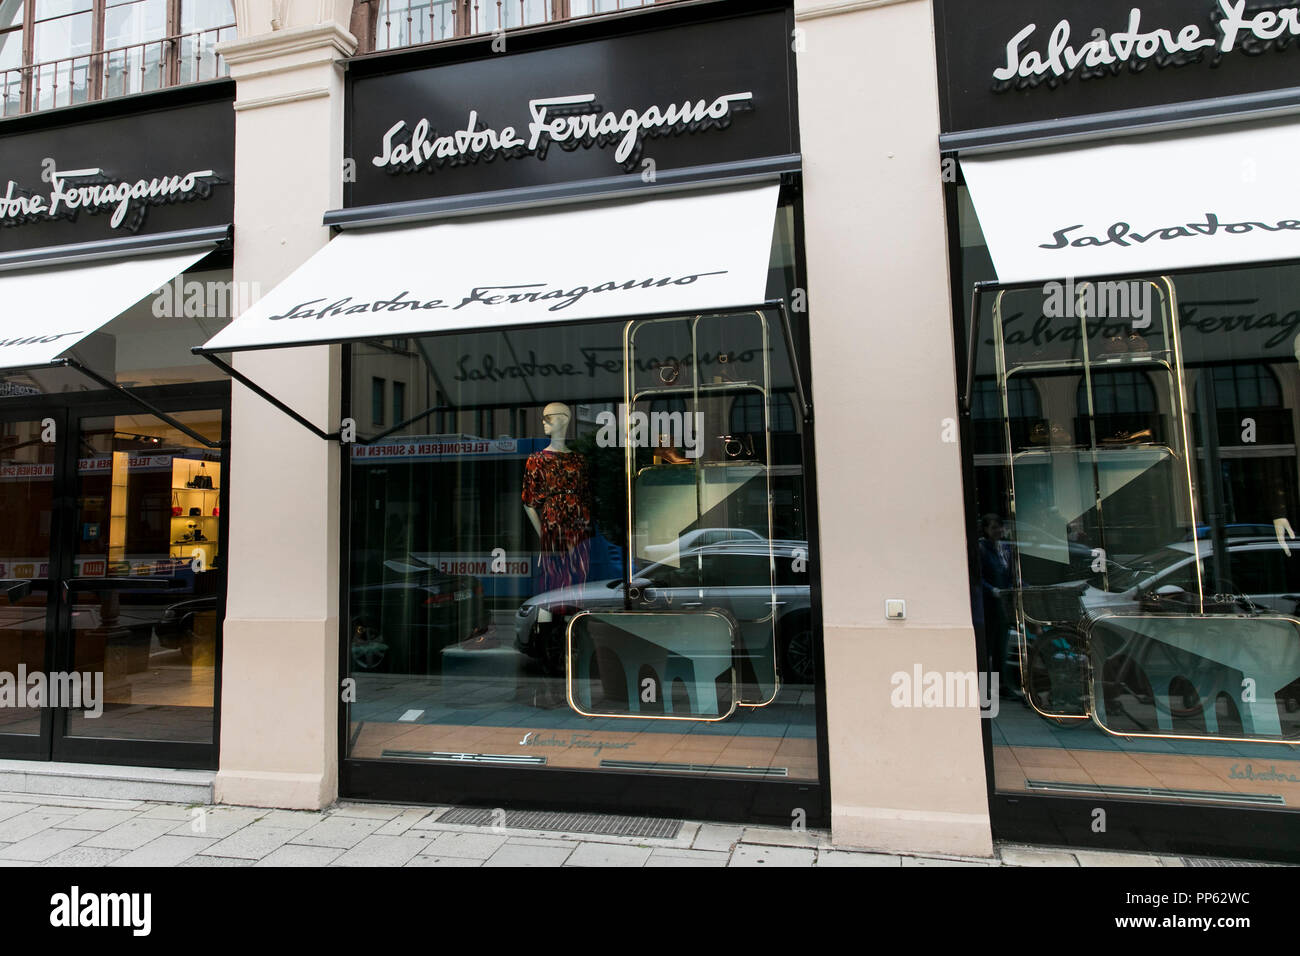 A logo sign outside of a Salvatore Ferragamo retail store in Munich, Germany, on September 2, 2018. - Stock Image